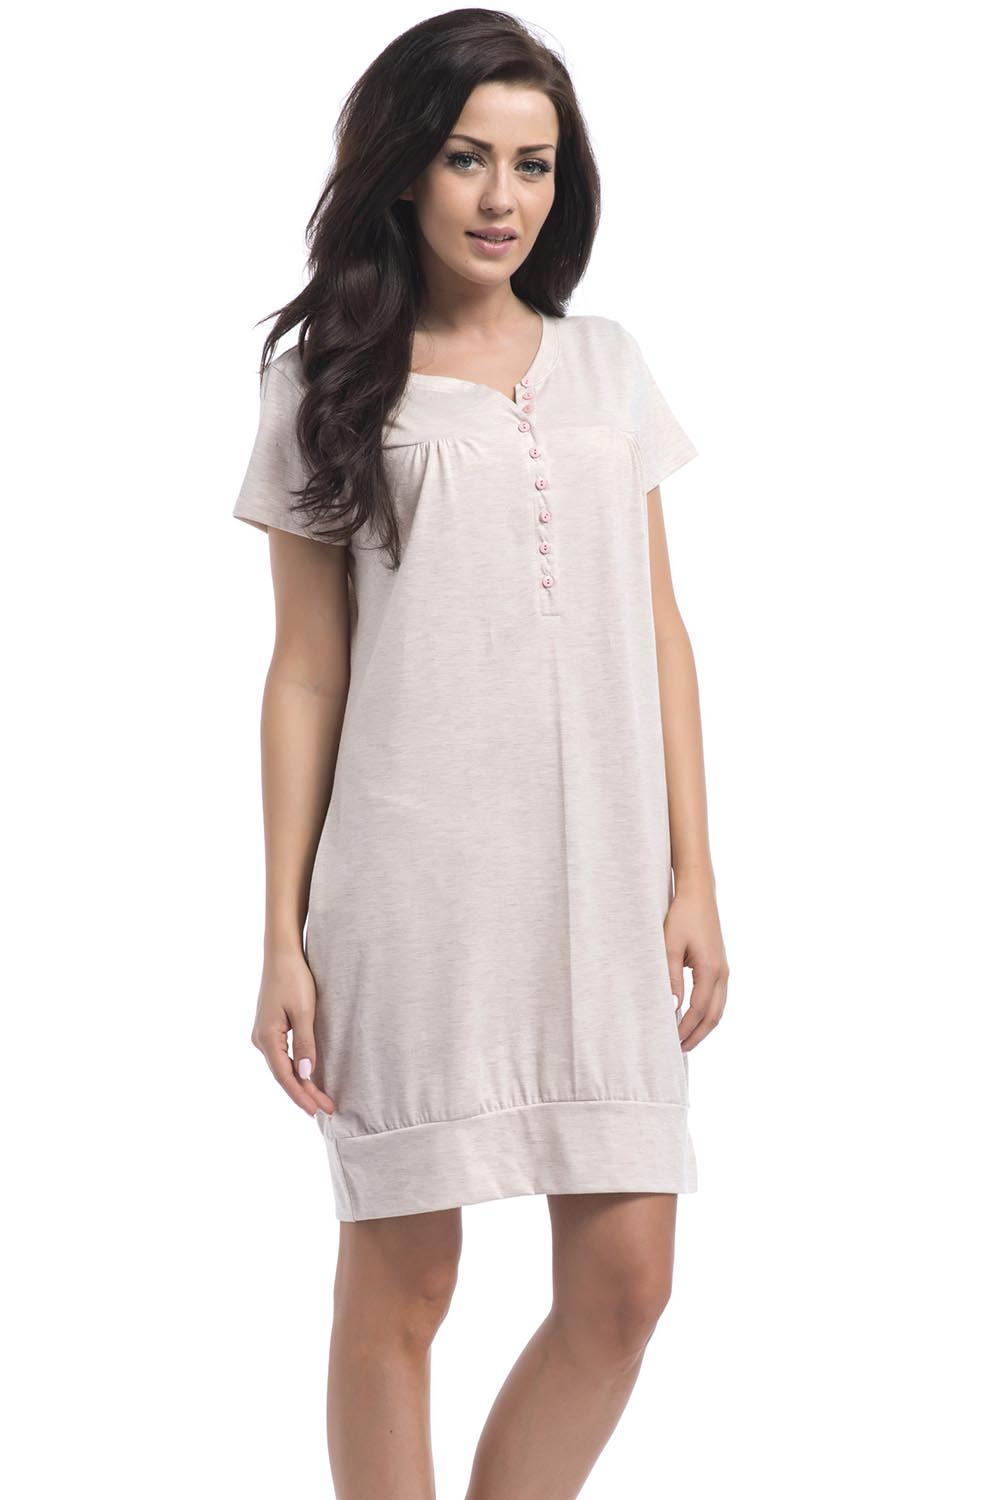 Online shopping for Clothing from a great selection of Nightdresses & Nightshirts, Sets, Tops, Bottoms & more at everyday low prices.